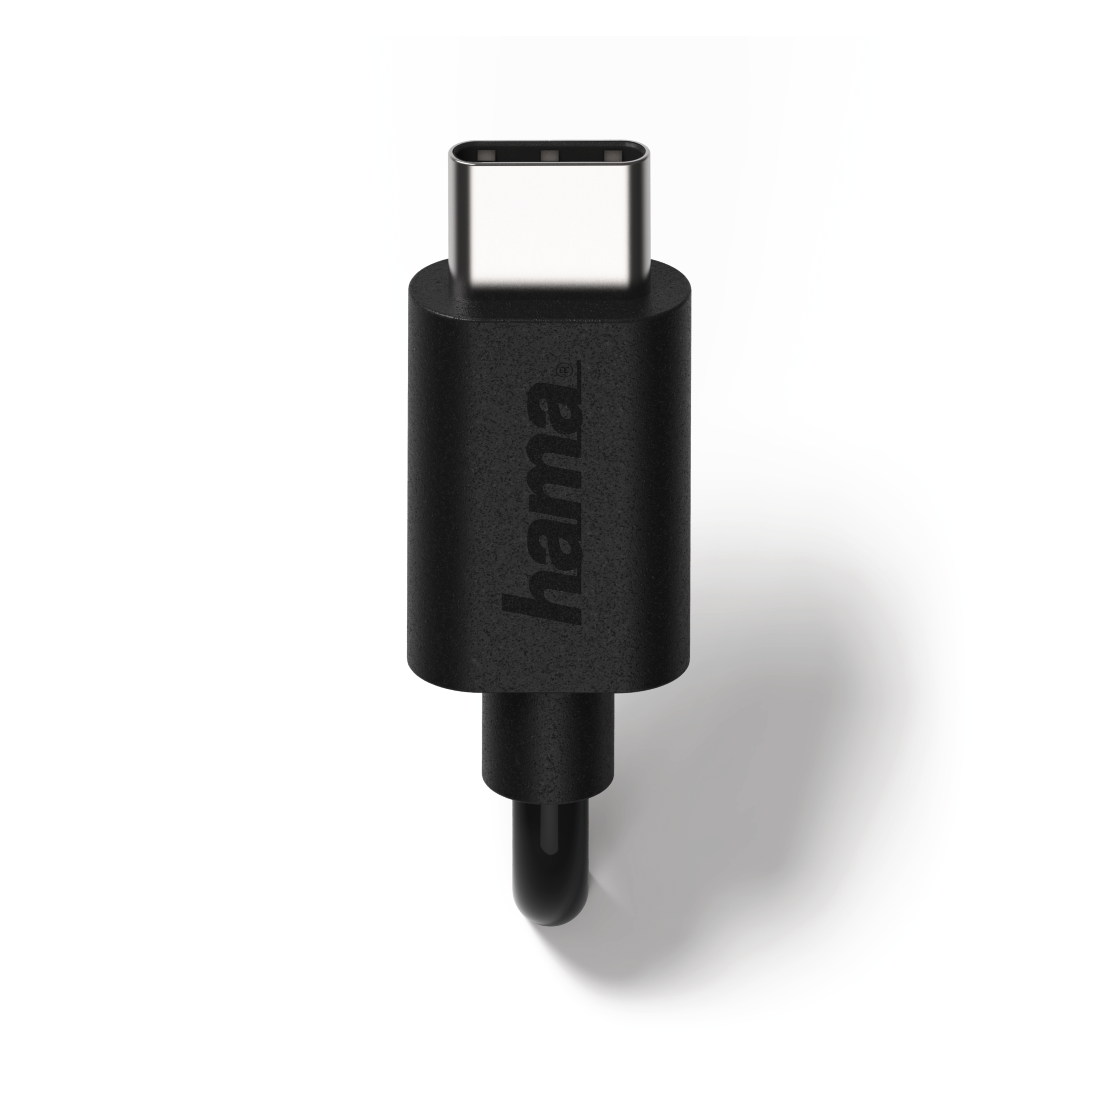 abx2 High-Res Image 2 - Hama, Car Charger, USB Type-C, 3 A, black